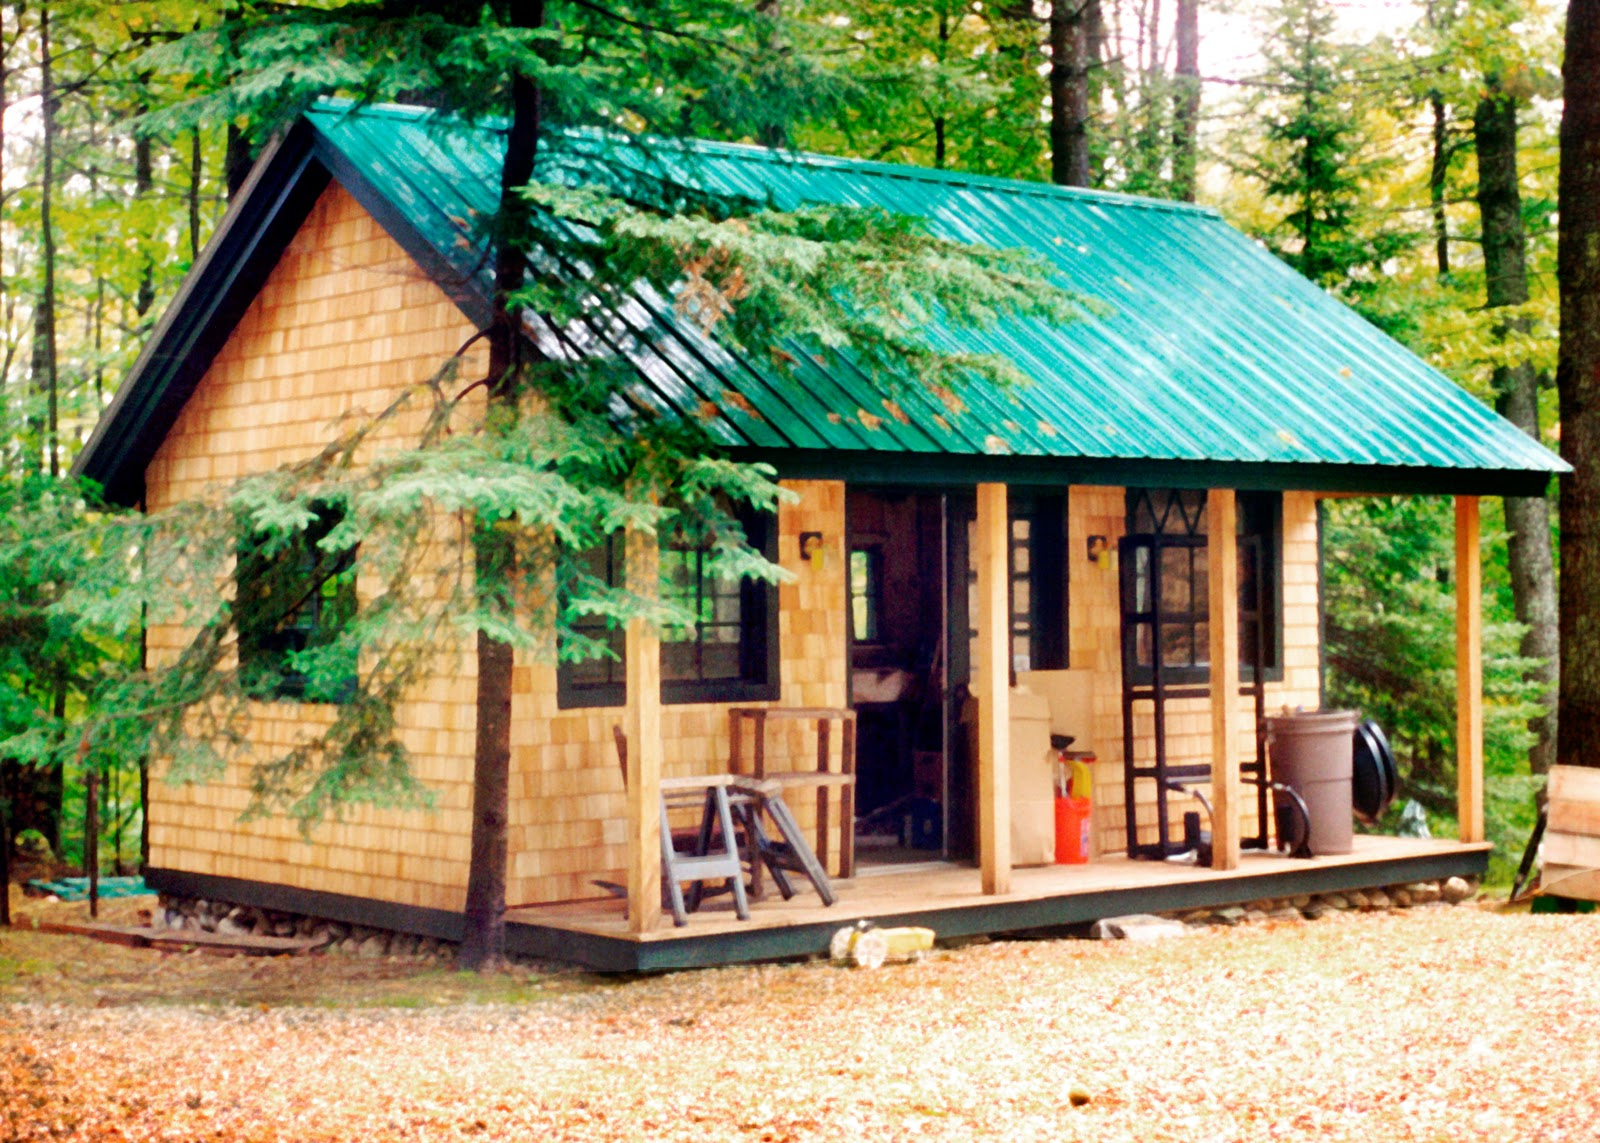 Win a full set of jamaica cottage shop cabin tiny house plans - Free cottage house plans image ...